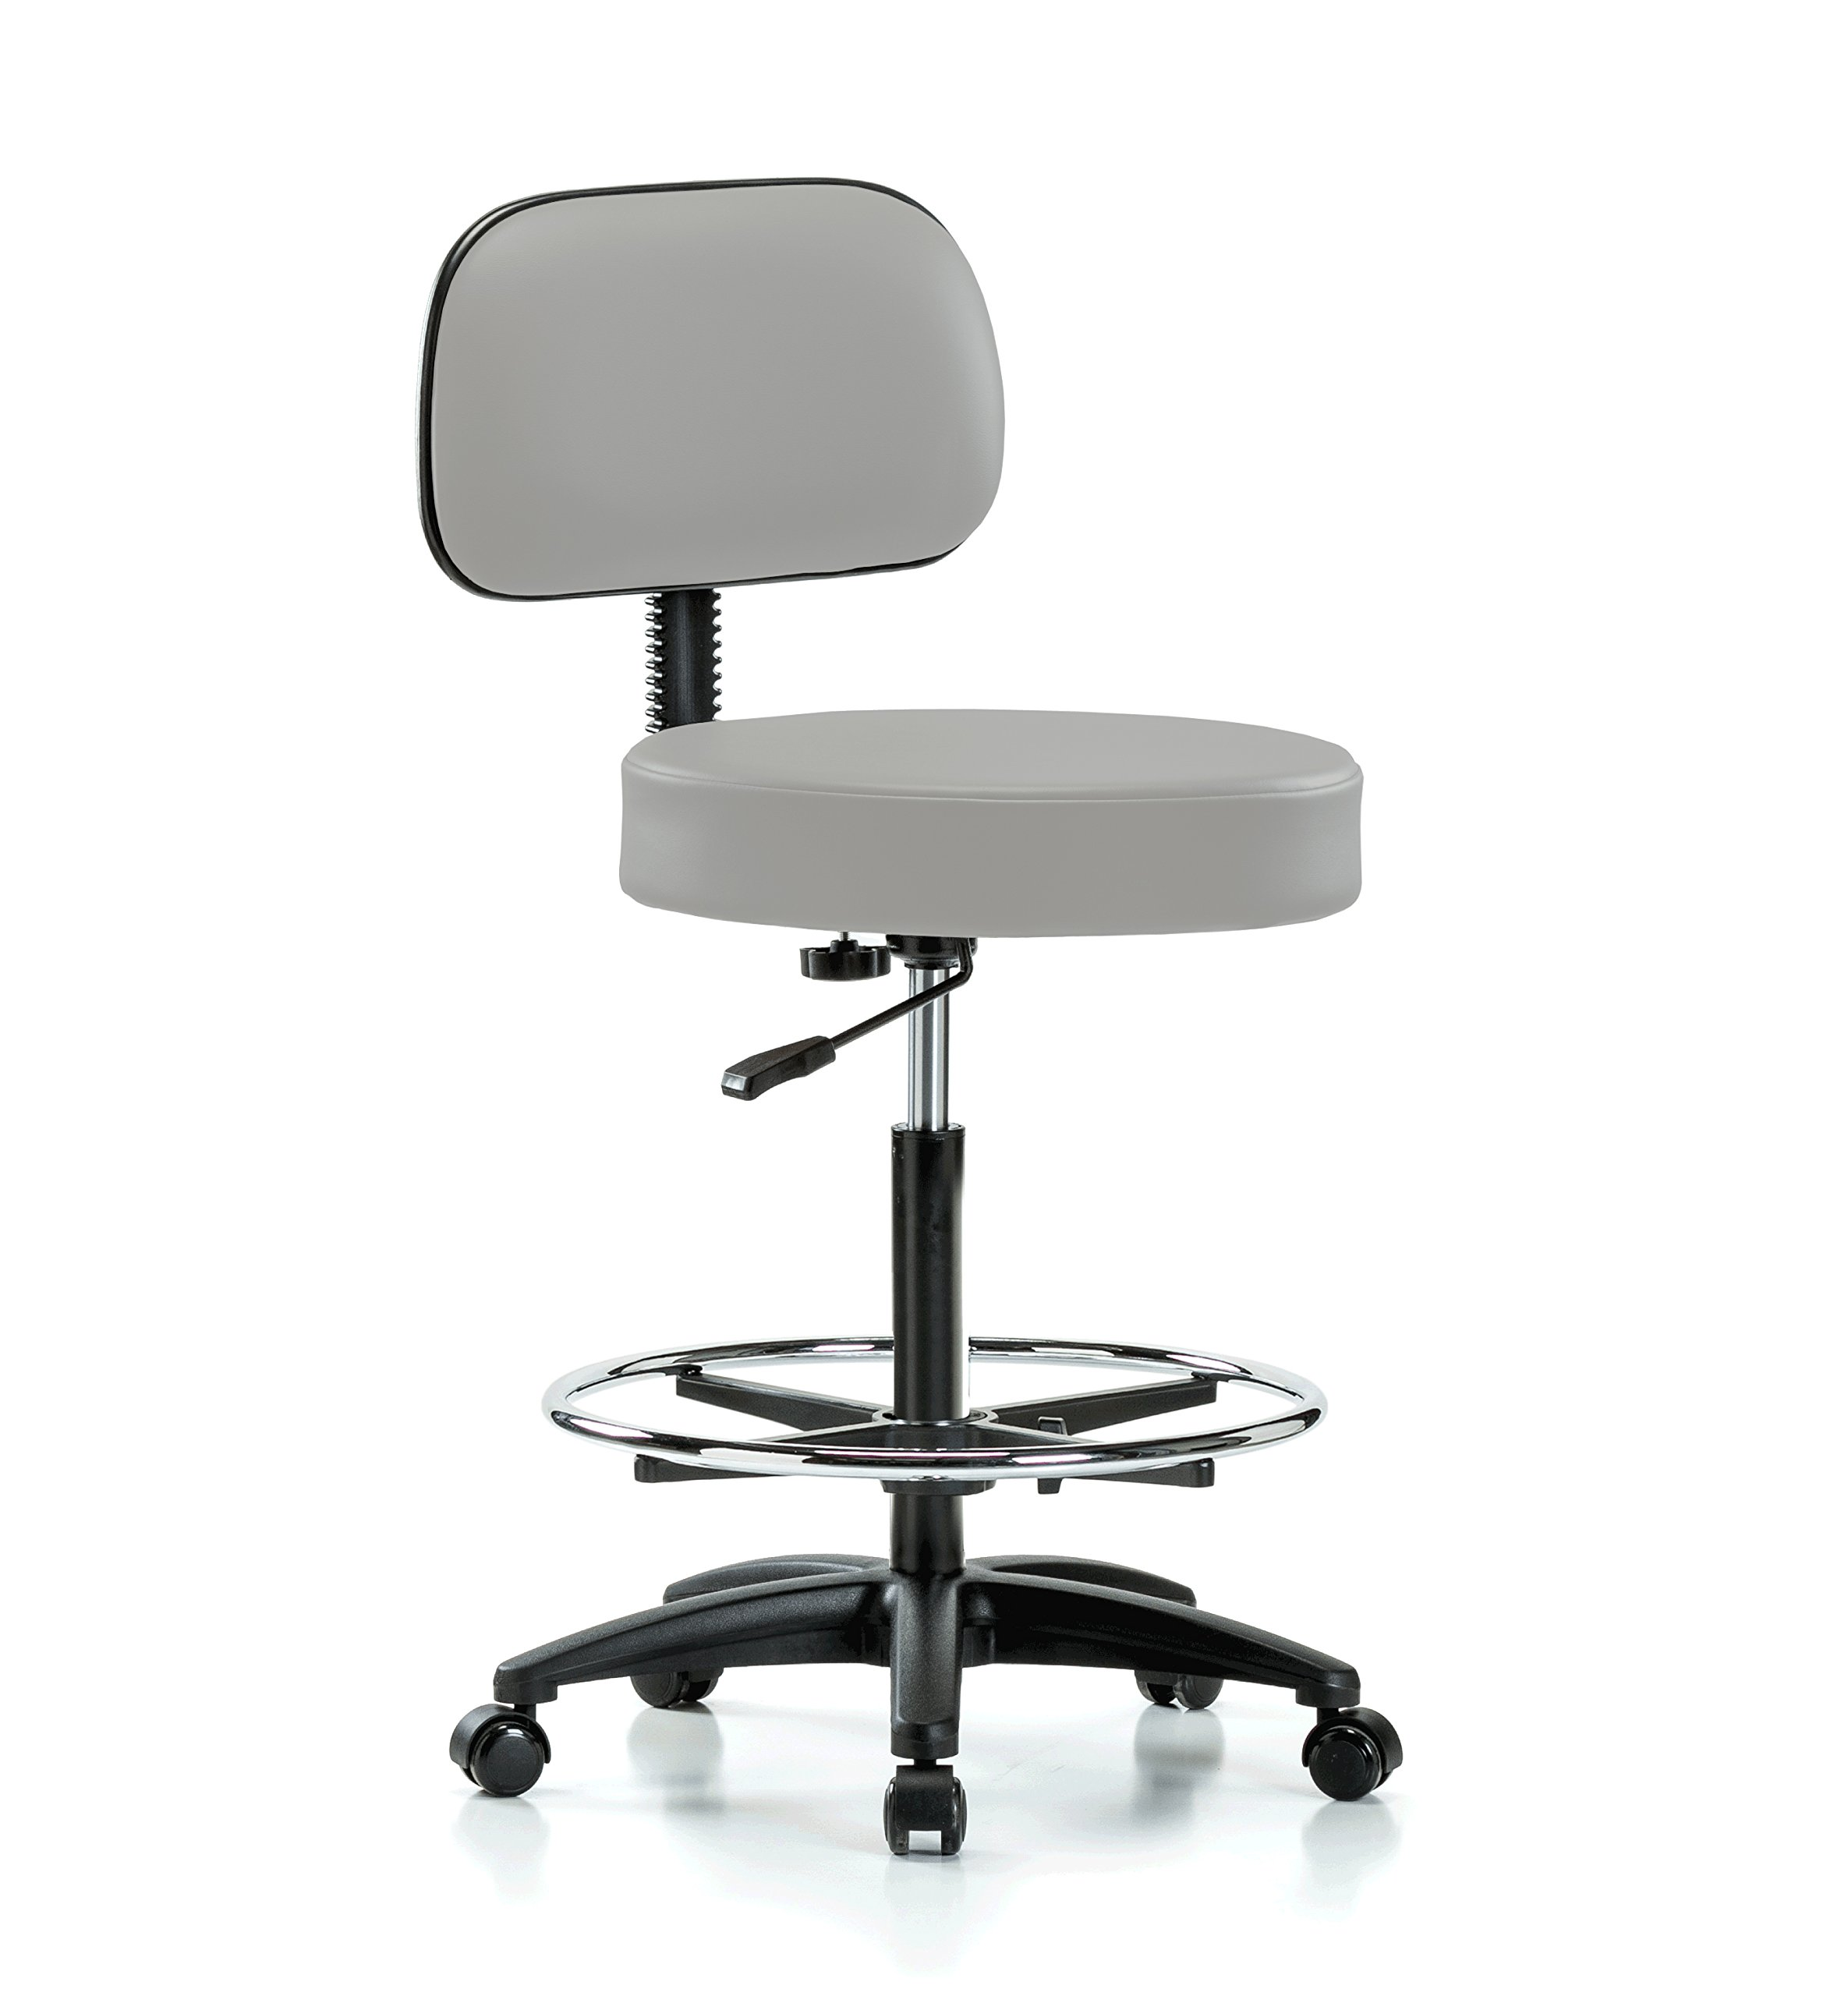 Perch Rolling Walter Exam Office Stool with Footring and Adjustable Backrest for Medical Dental Spa Salon Massage Lab or Workshop 25'' - 35'' (Stationary Caps/Grey Vinyl)